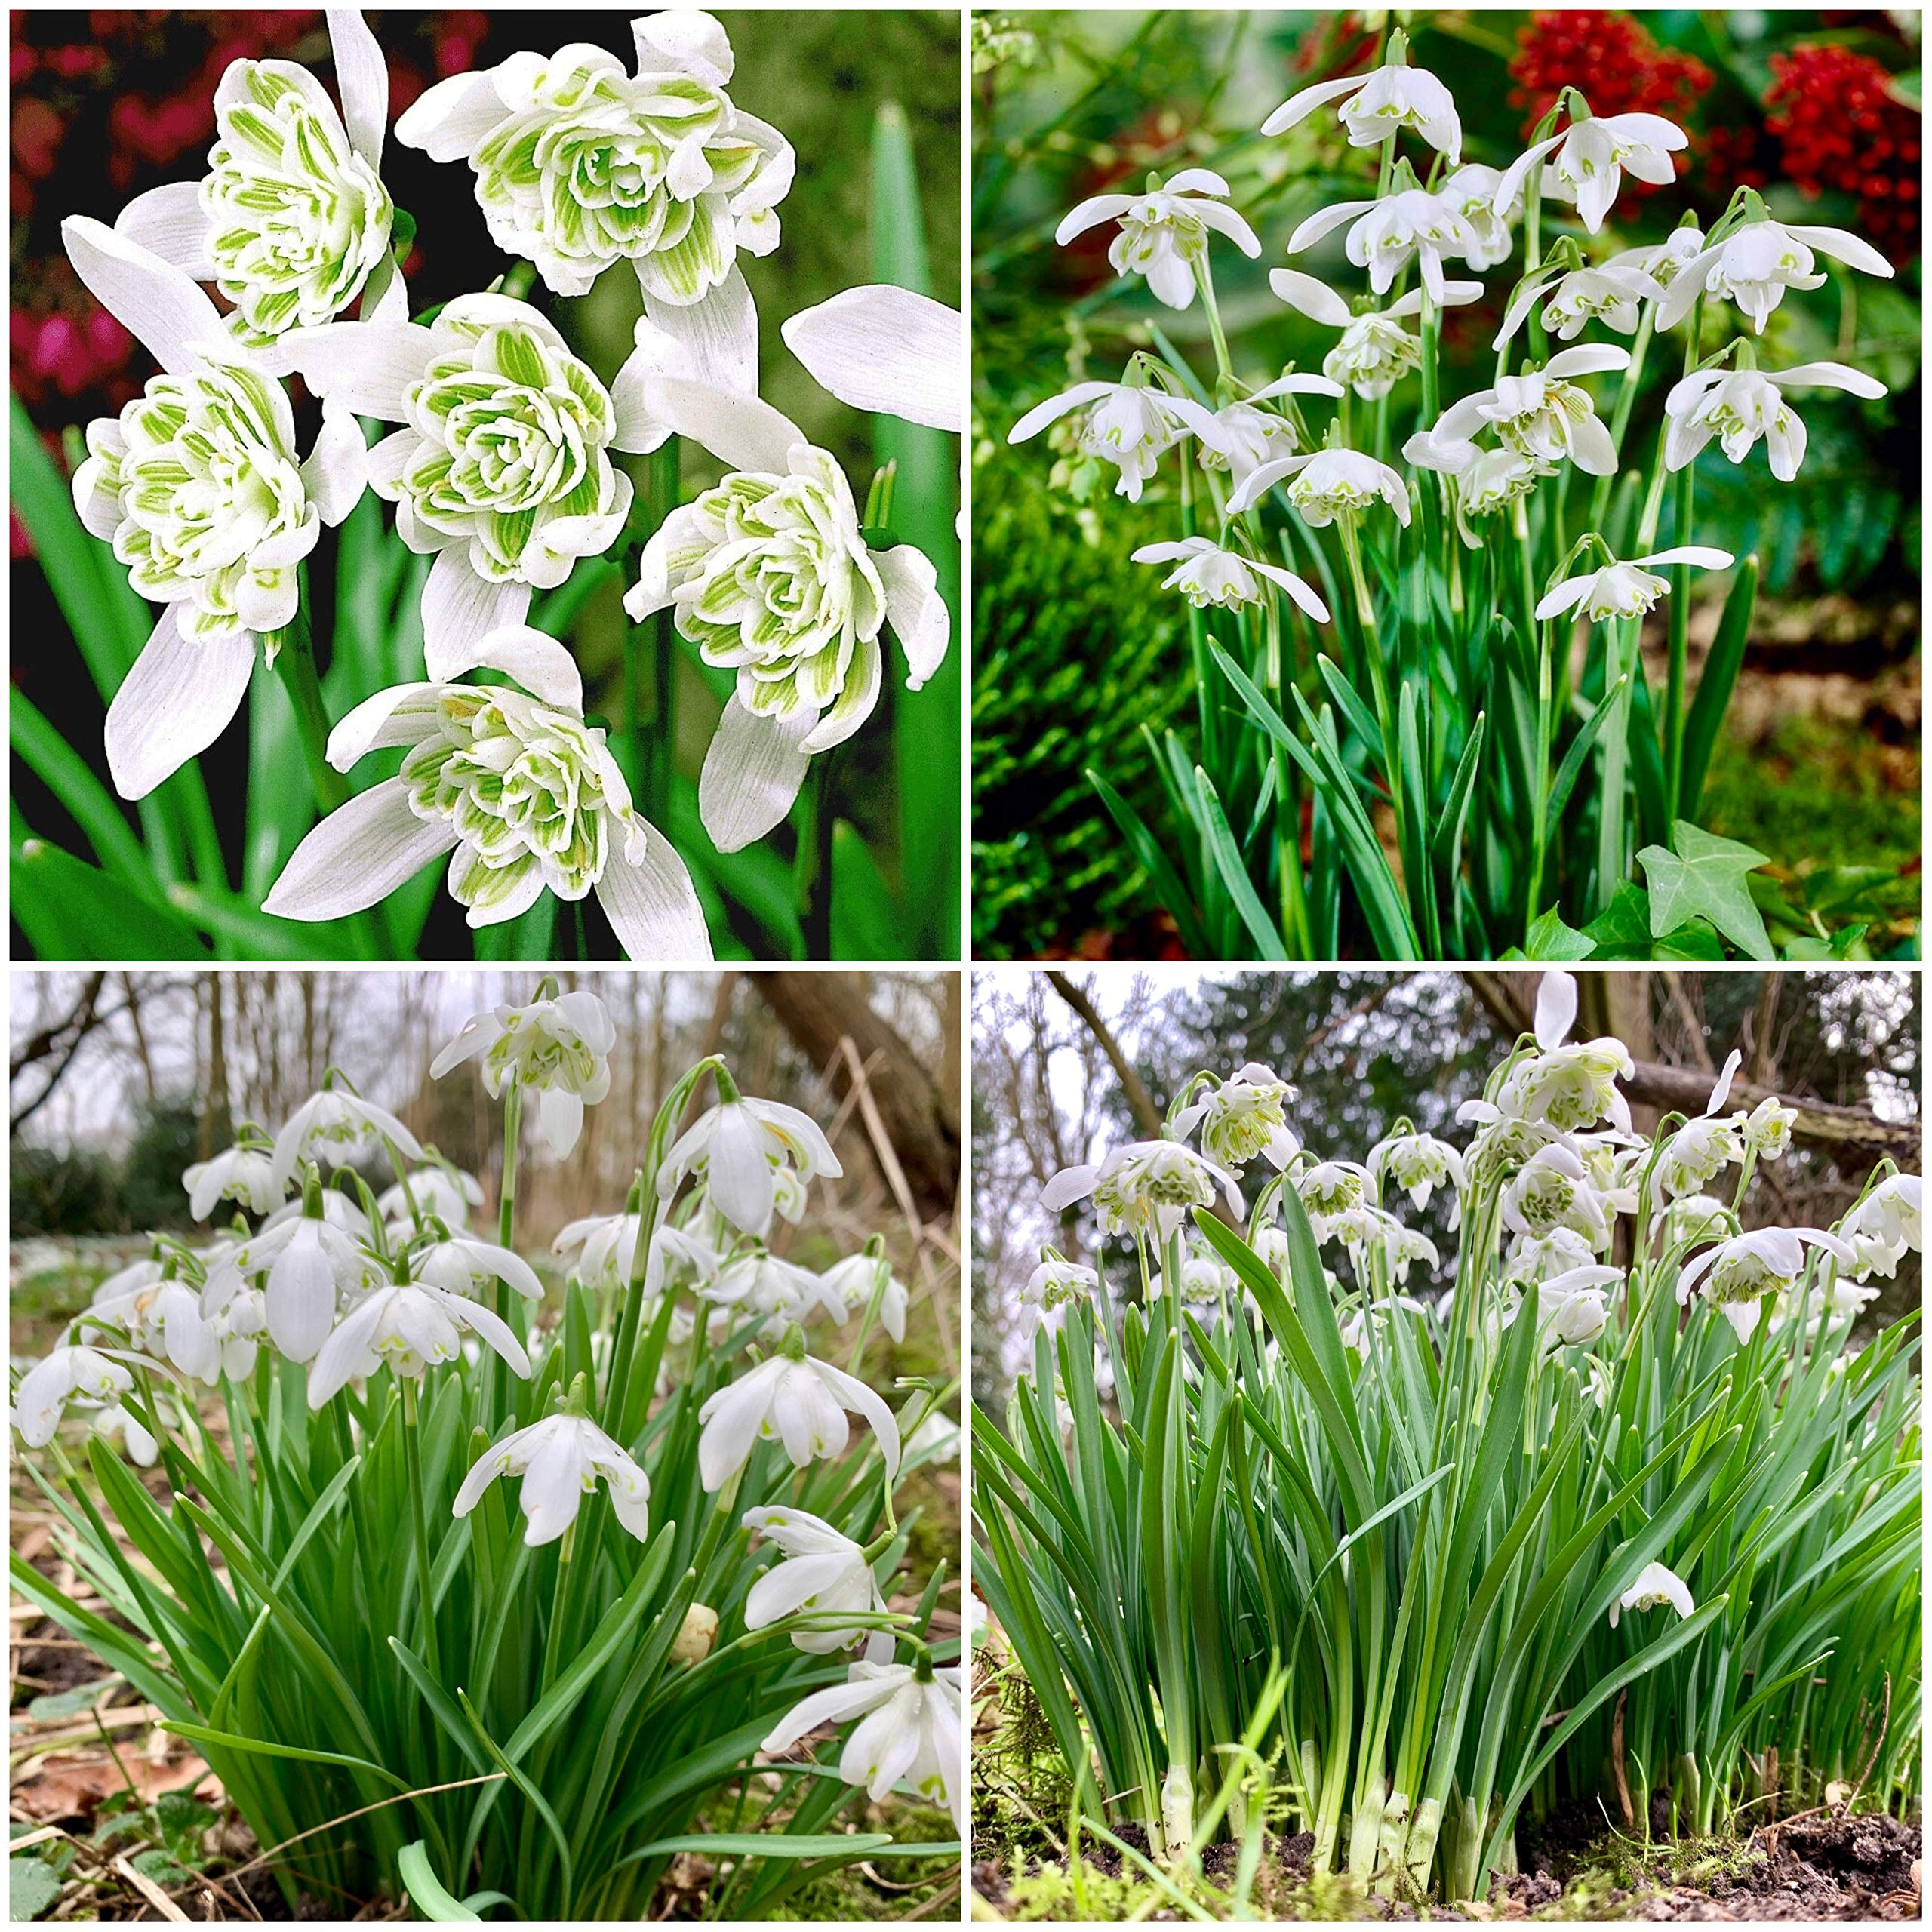 Woodland bulbs® 100 x DOUBLE SNOWDROPS BULBS Freshly Lifted - Spring Flowering Bulbs - Galanthus Nivalis Flore Pleno - Plant With Bluebells & Aconites - FREE UK P&P